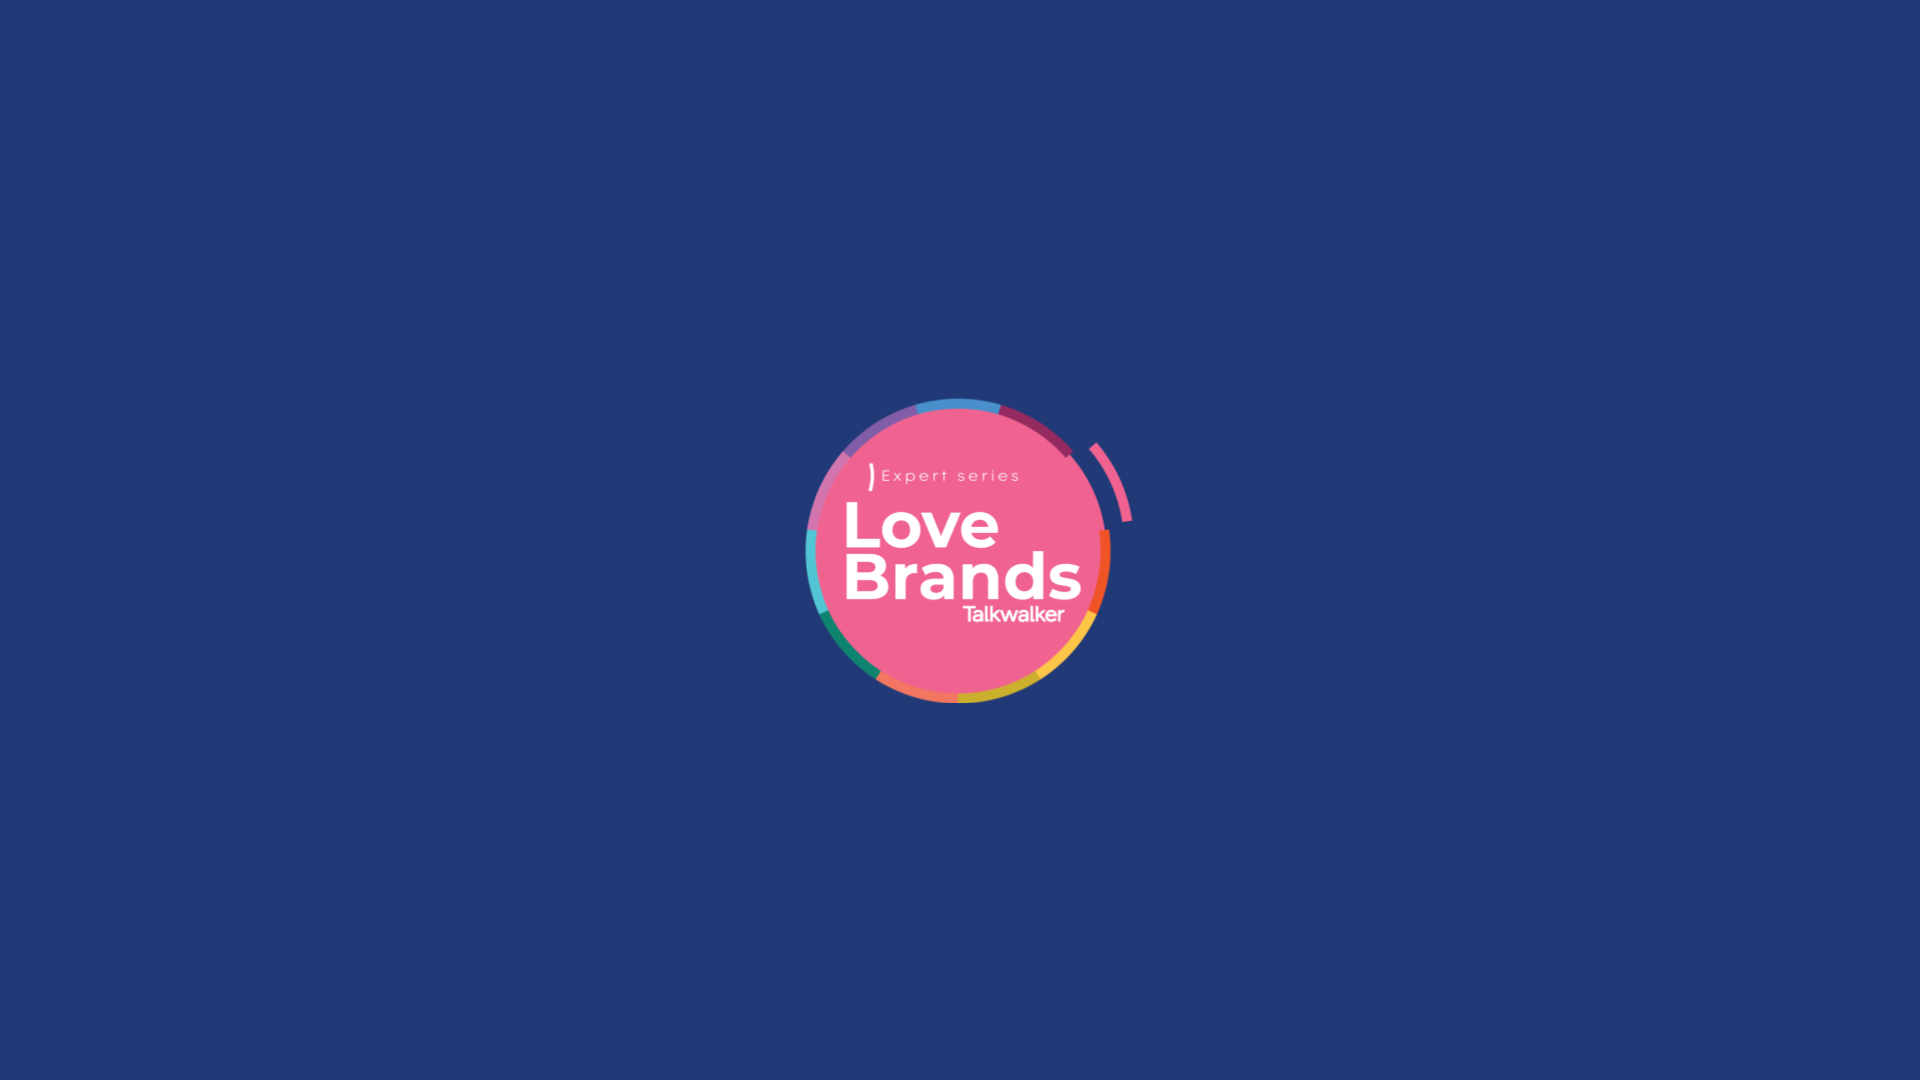 Take a step back: Re-imagining brand love in today's world